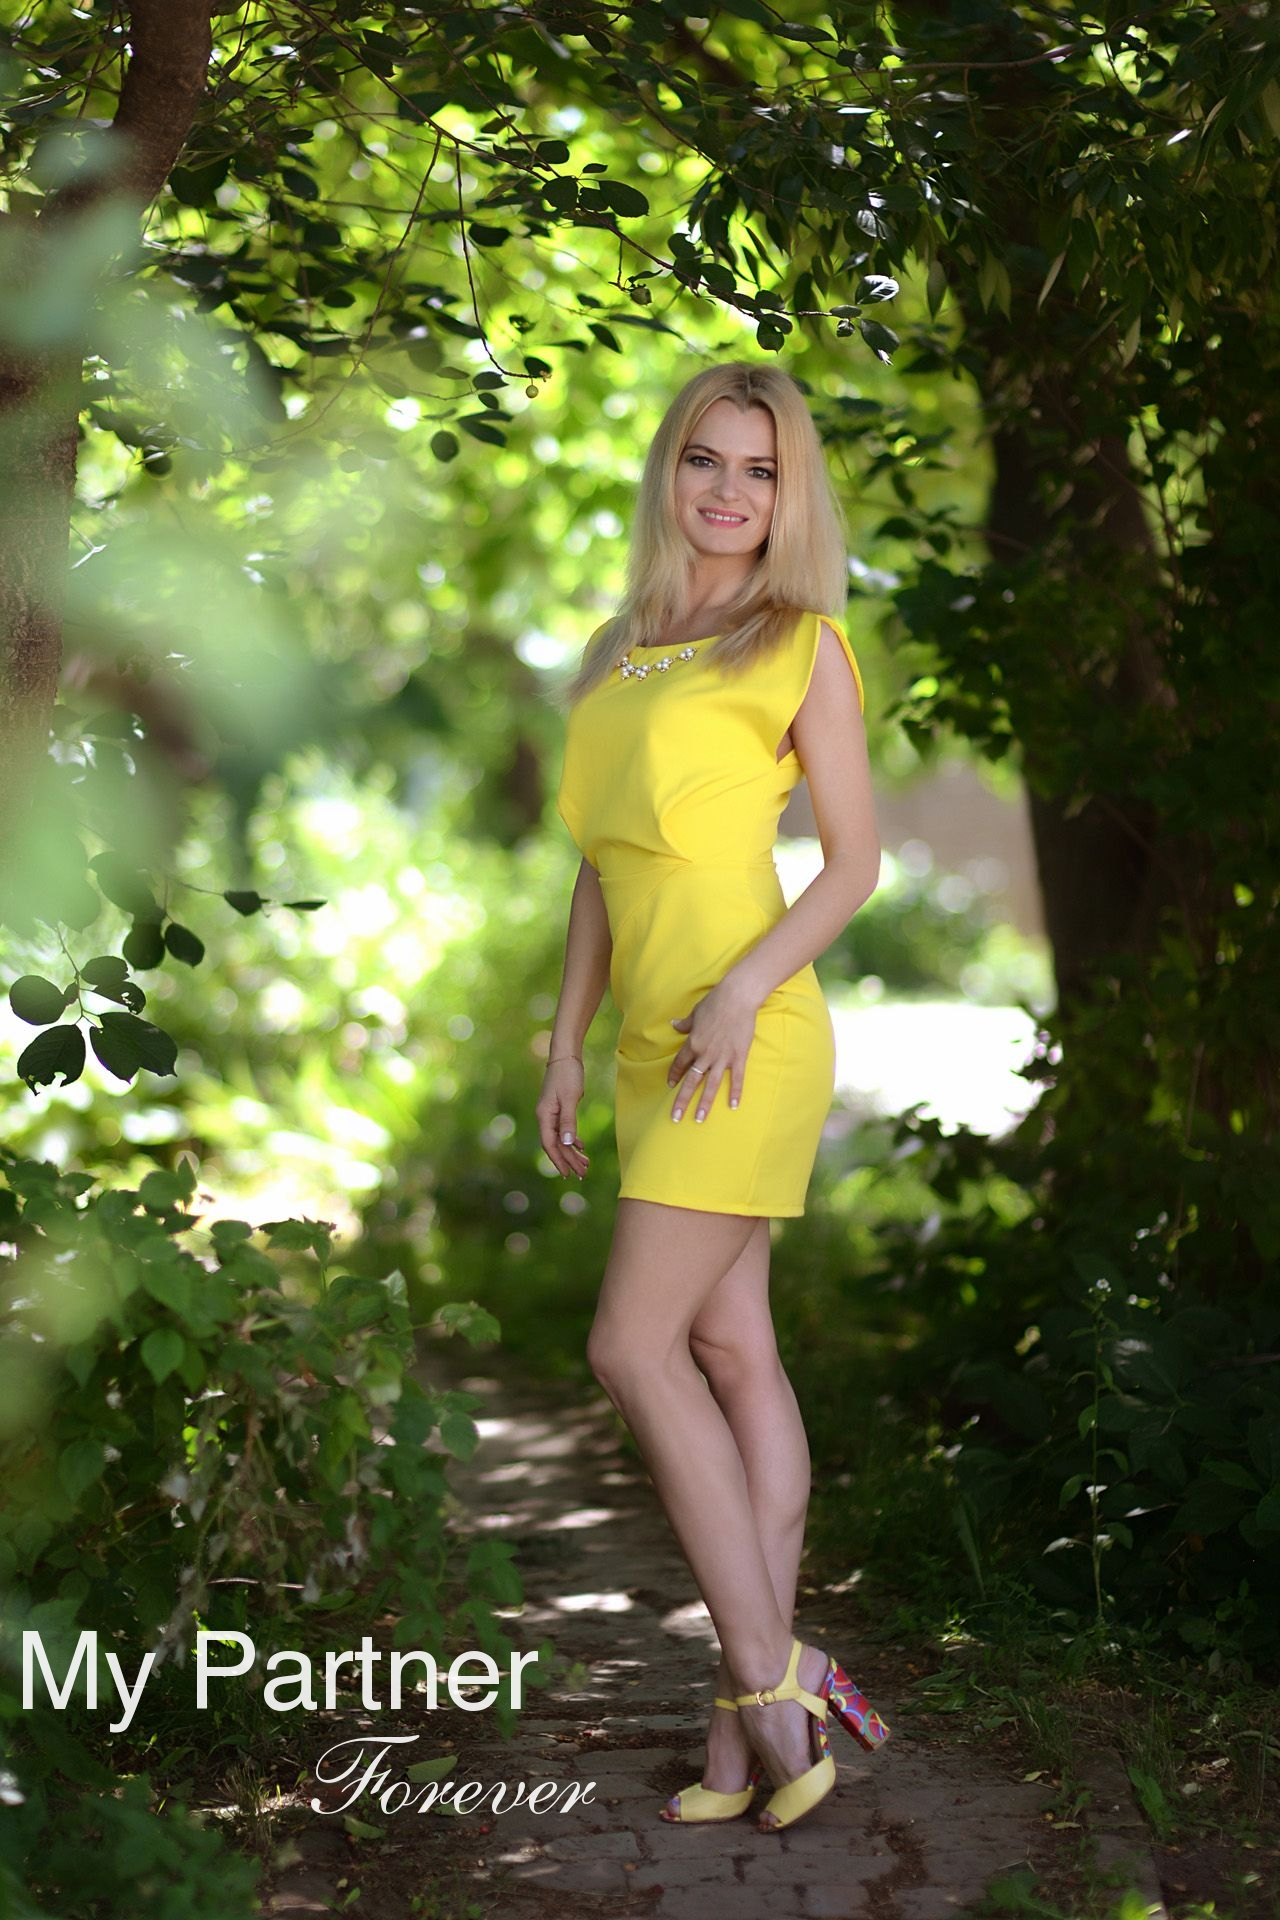 Matchmaking Service to Meet Marina from Kharkov, Ukraine